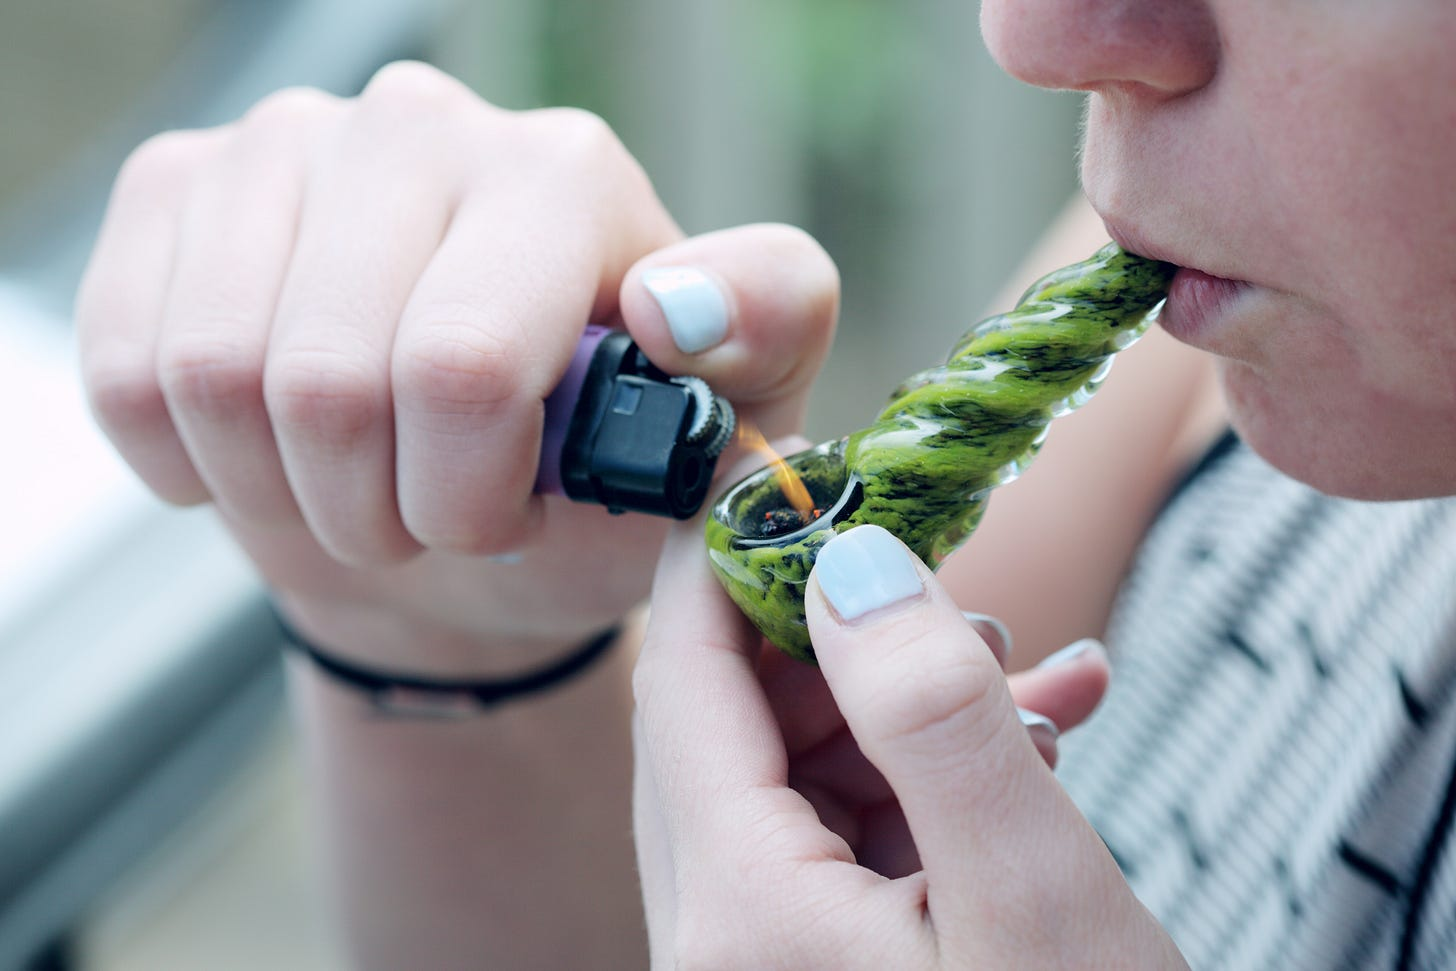 person with light blue nail polish lighting the bowl of a green glass pipe with marijuana in it